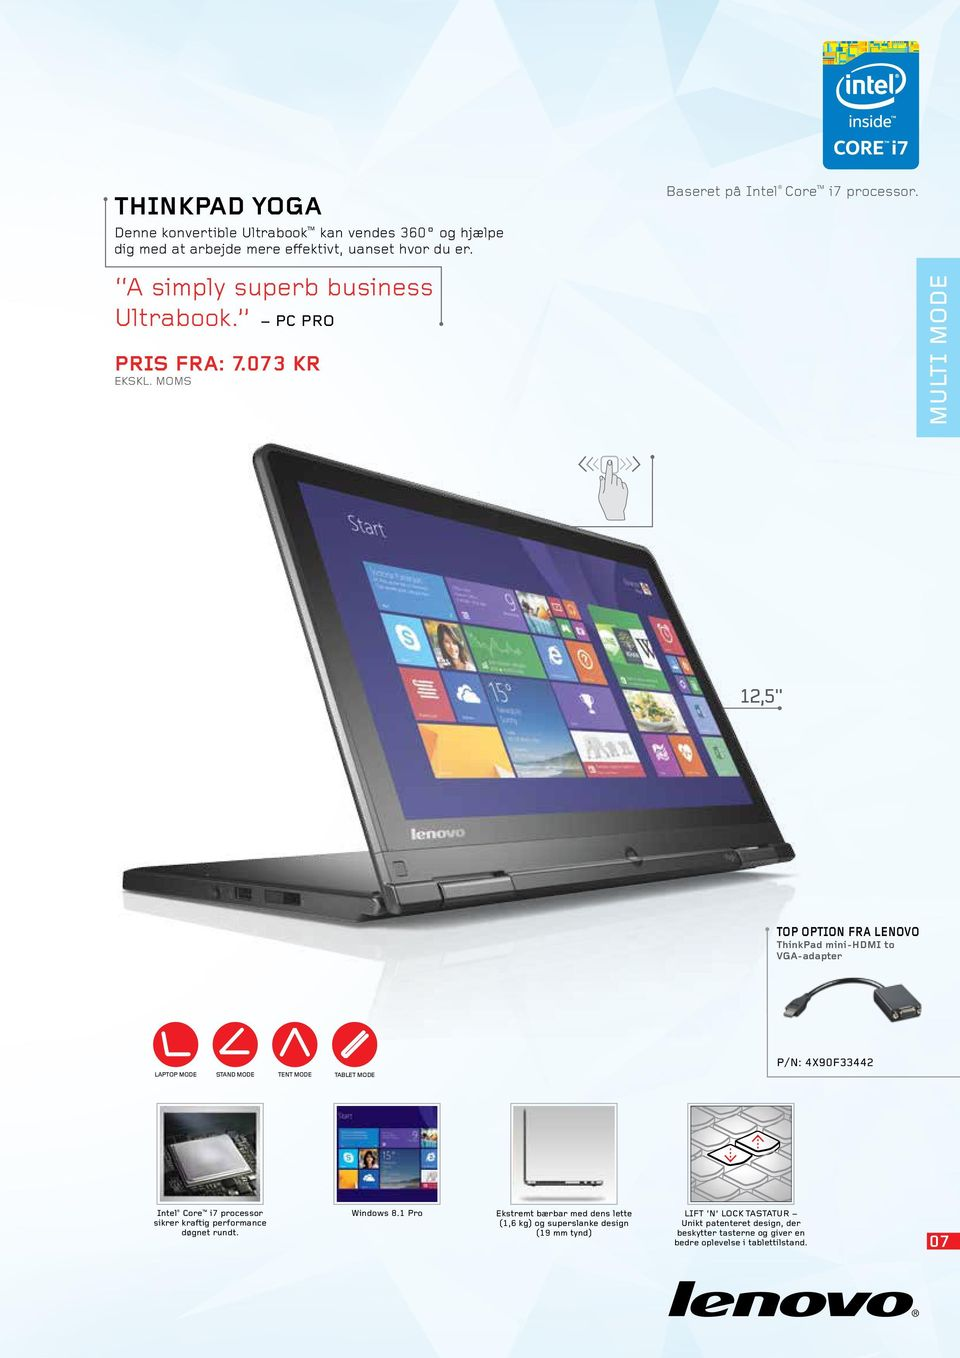 "MULTI MODE 12,5"" Top OPTION fra Lenovo ThinkPad mini-hdmi to VGA-adapter P/N: 4X90F33442 LAPTOP MODE STAND MODE TENT MODE TABLET MODE Intel Core i7"